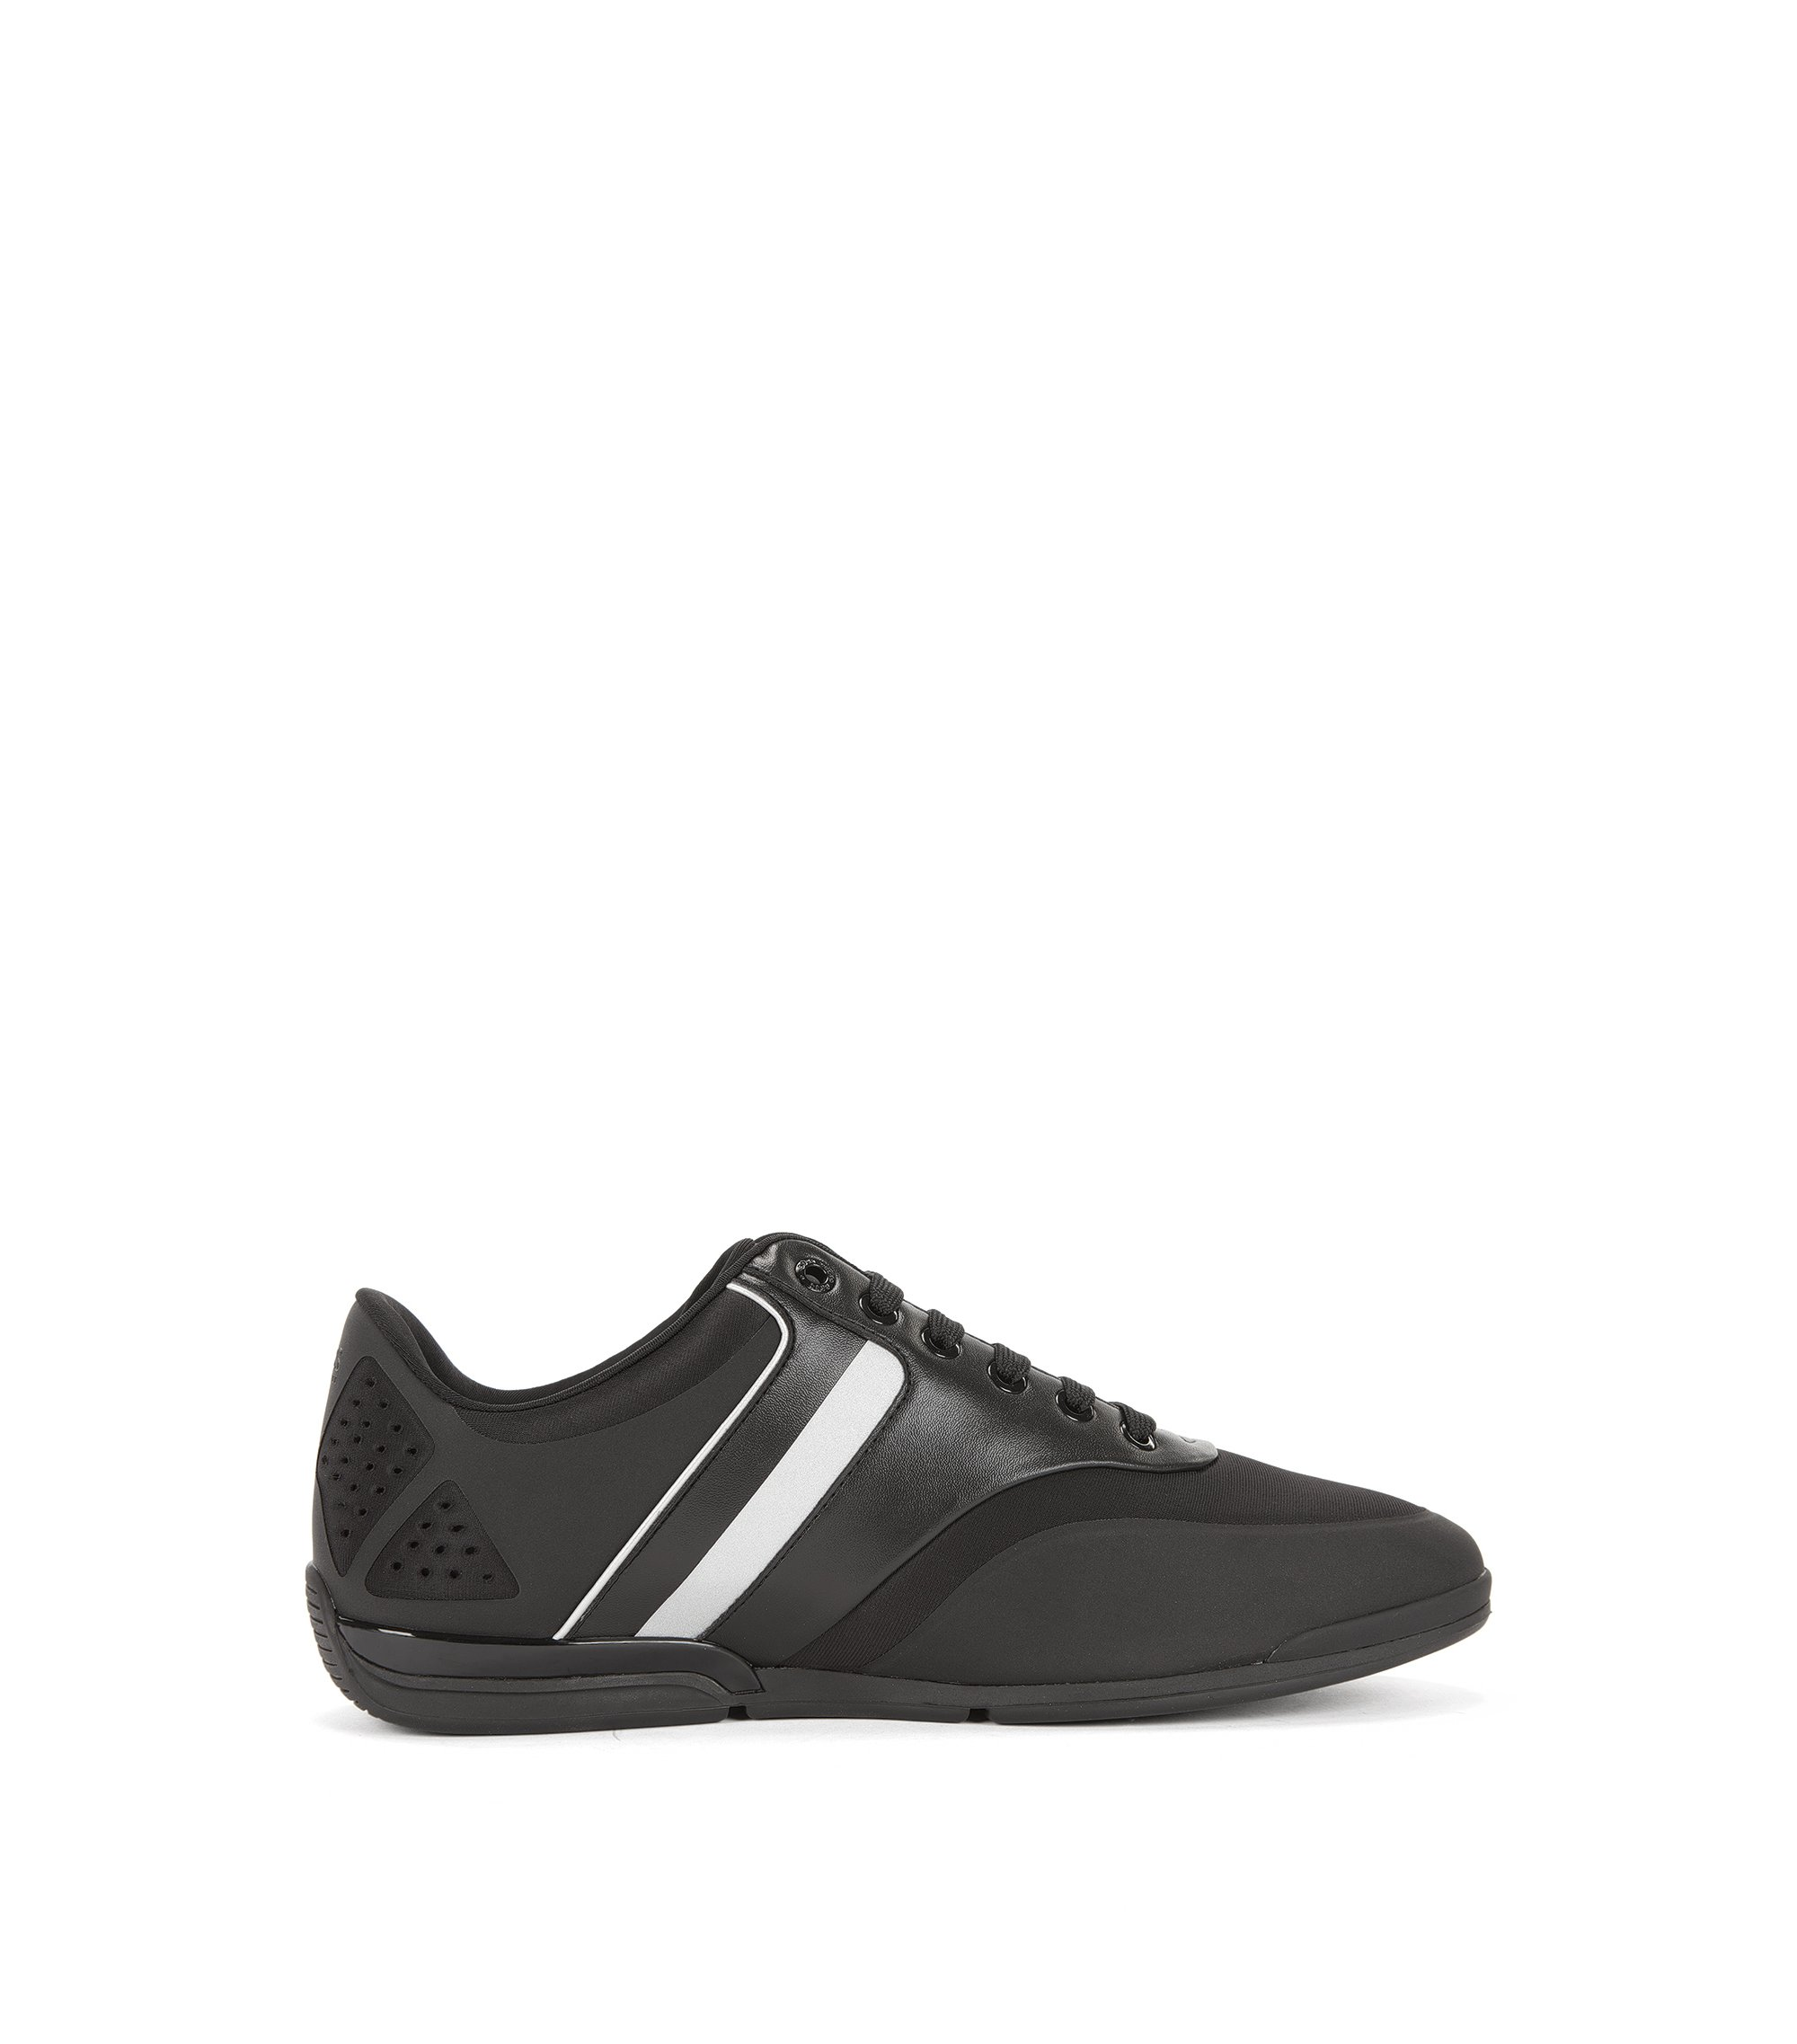 Vegan Leather Sneaker | Saturn Lowp Neo, Black